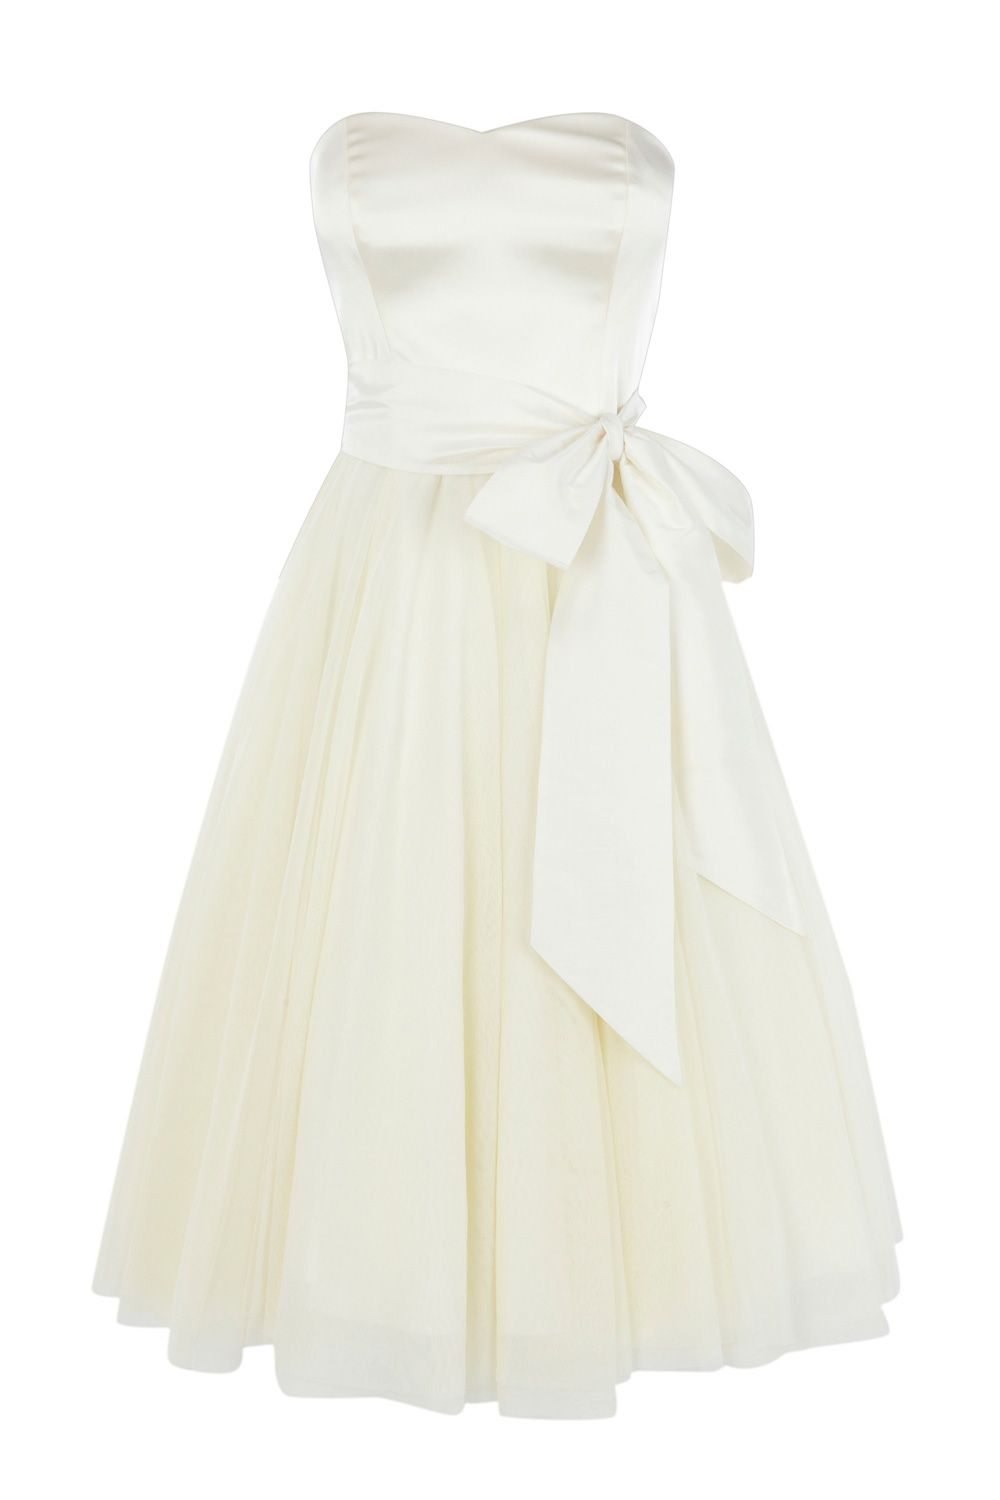 Coast Darling Dress 295 Lovely But Would It Be Too Long For